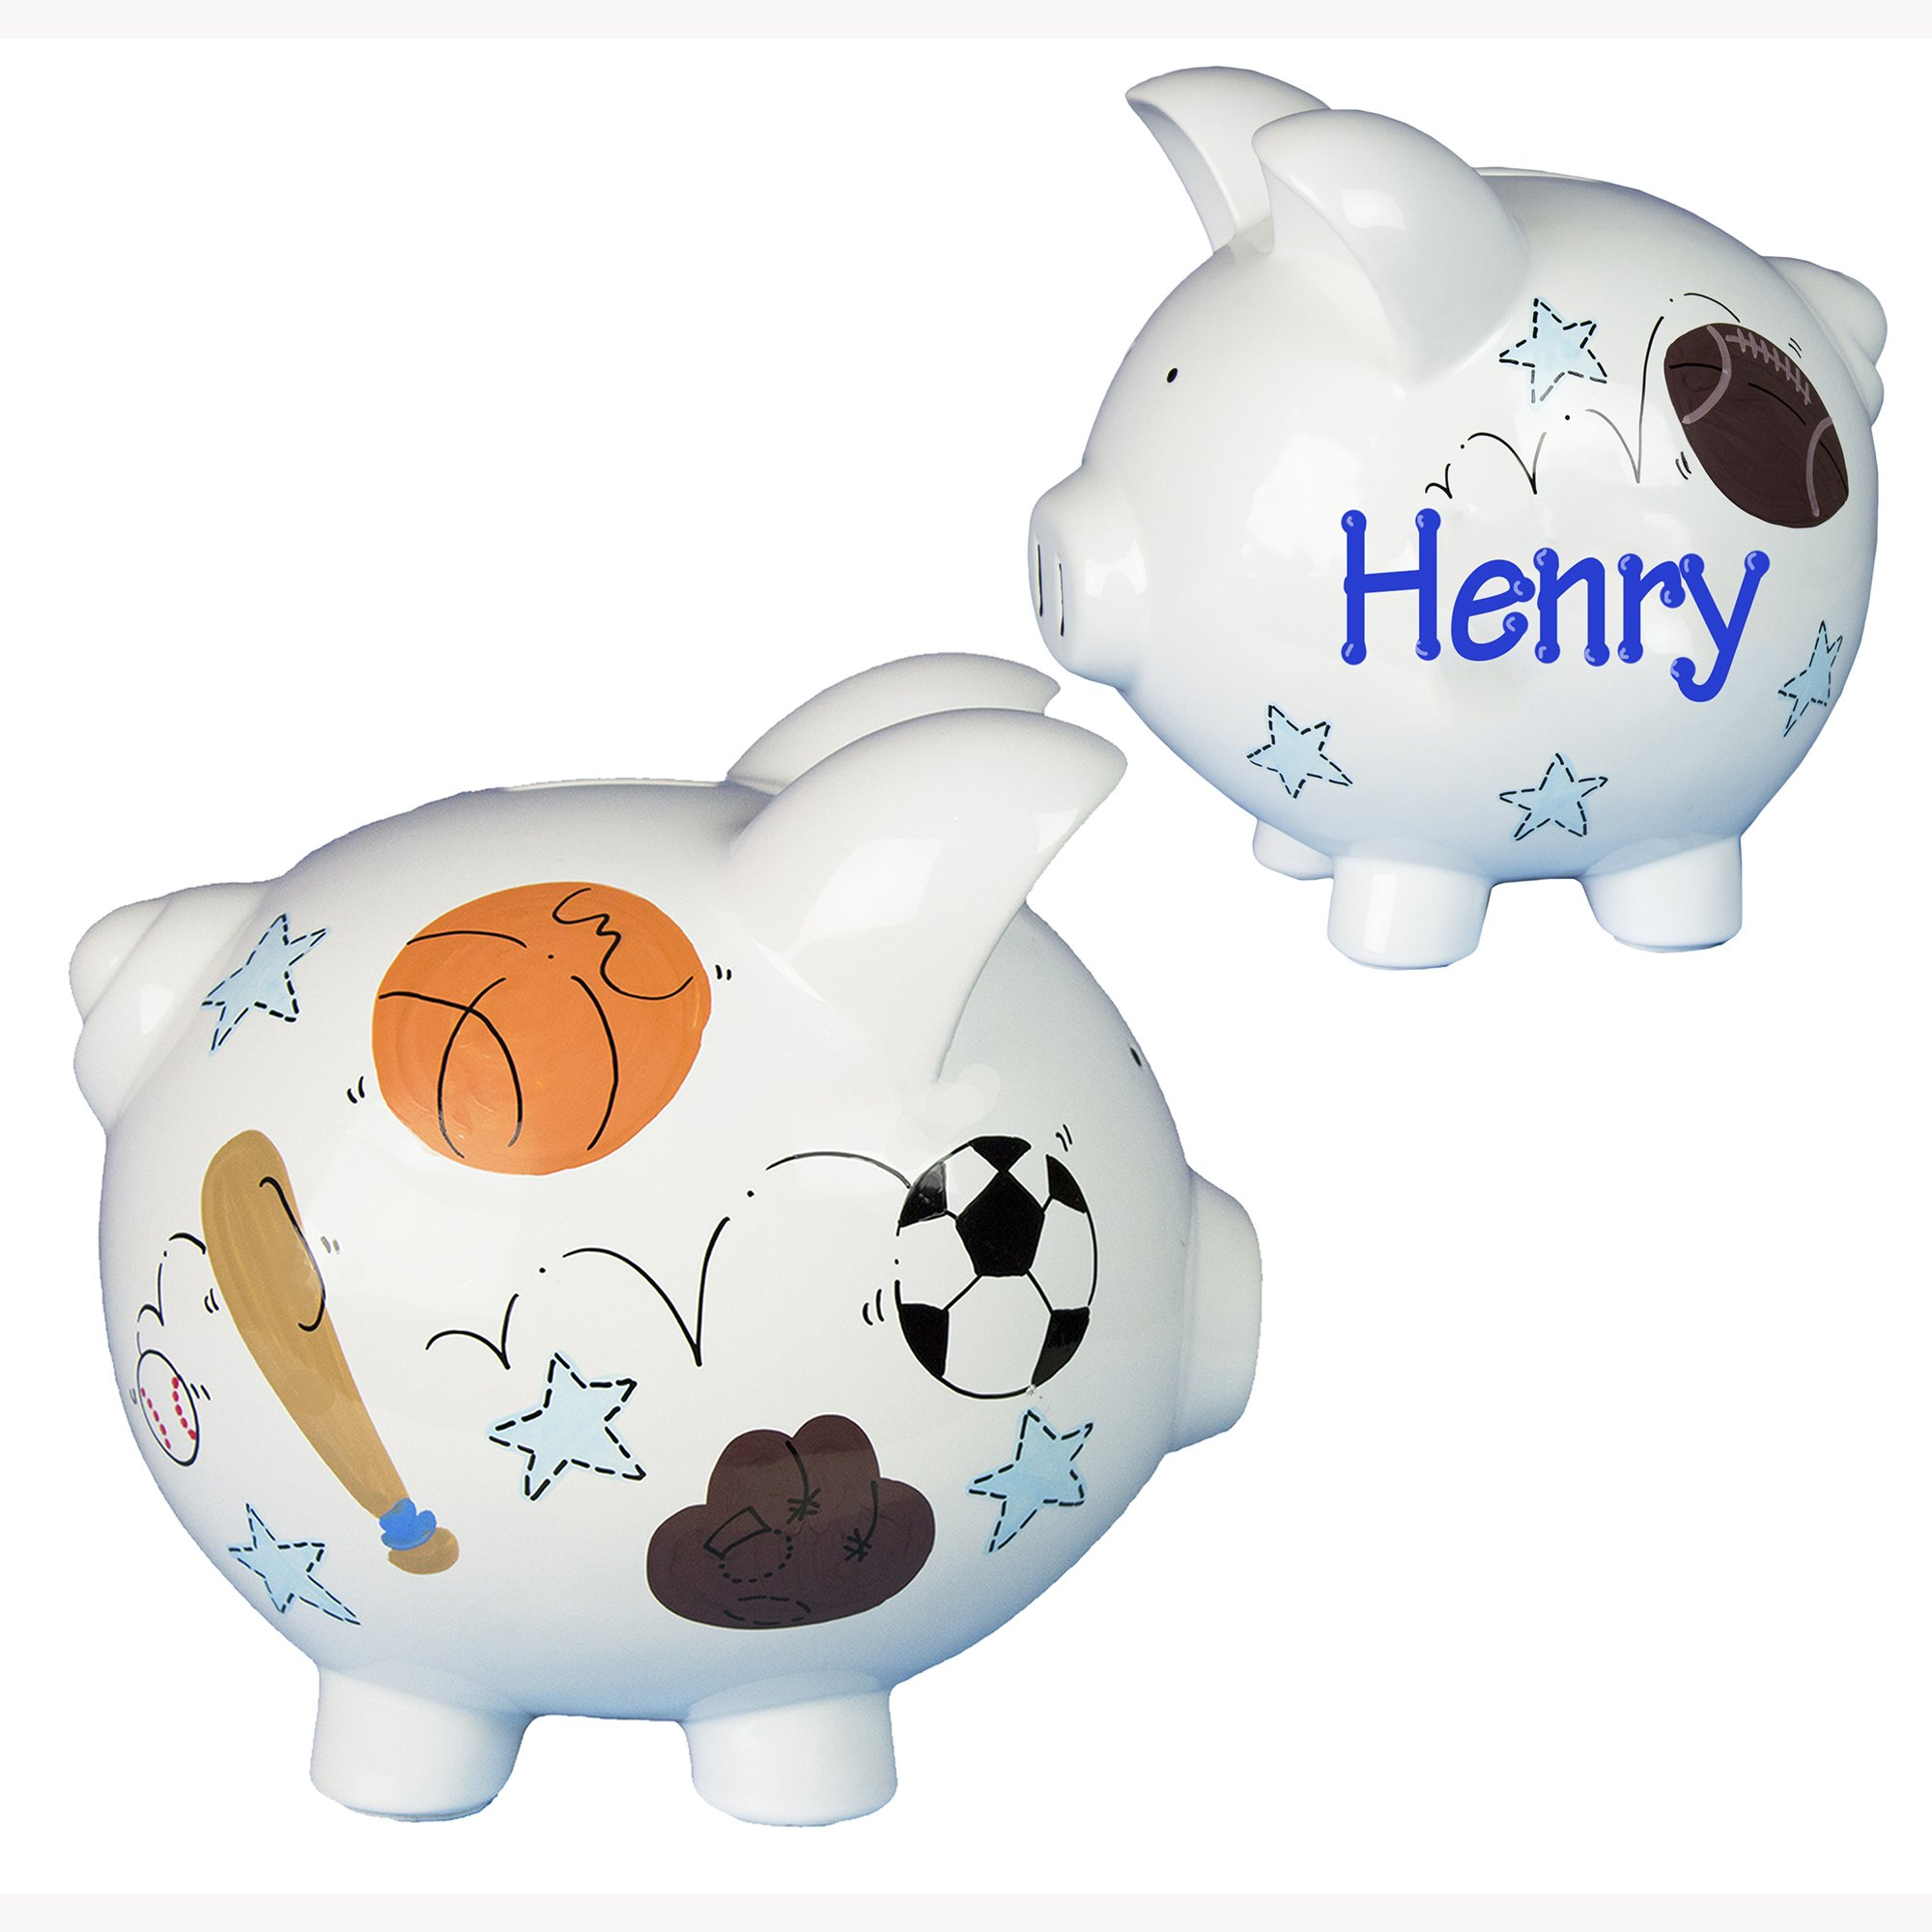 Personalized Sports Piggy Bank Hand Painted Large White Ceramic Piggybank by My Bambino - Soccer Football Basketball Baseball by MyBambino